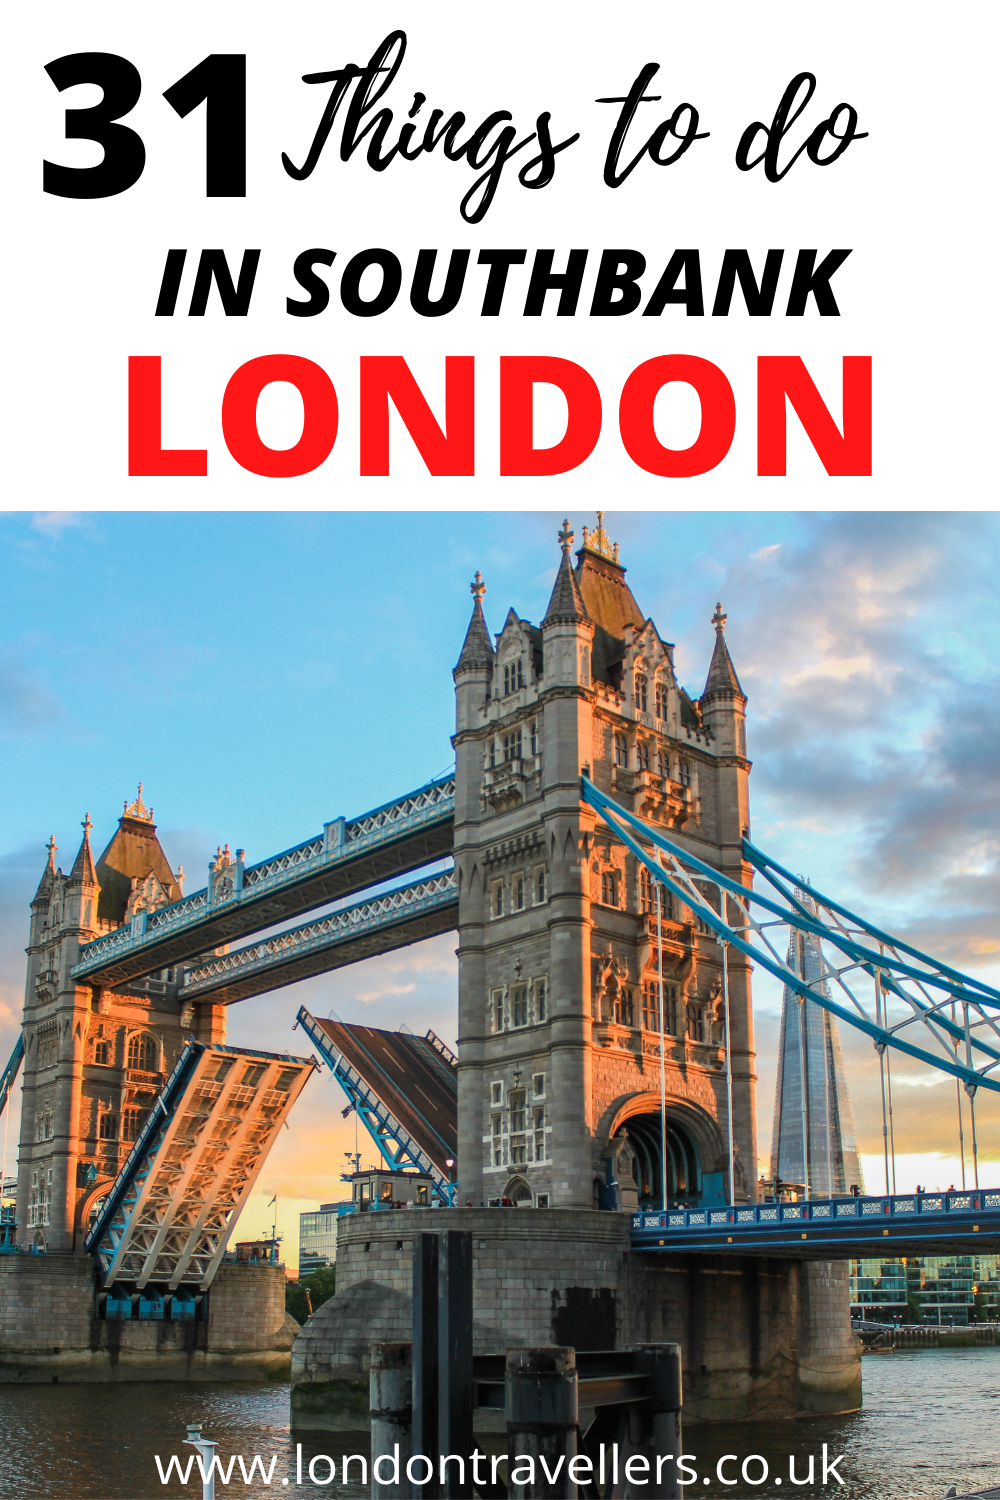 31 Things to do in Southbank London